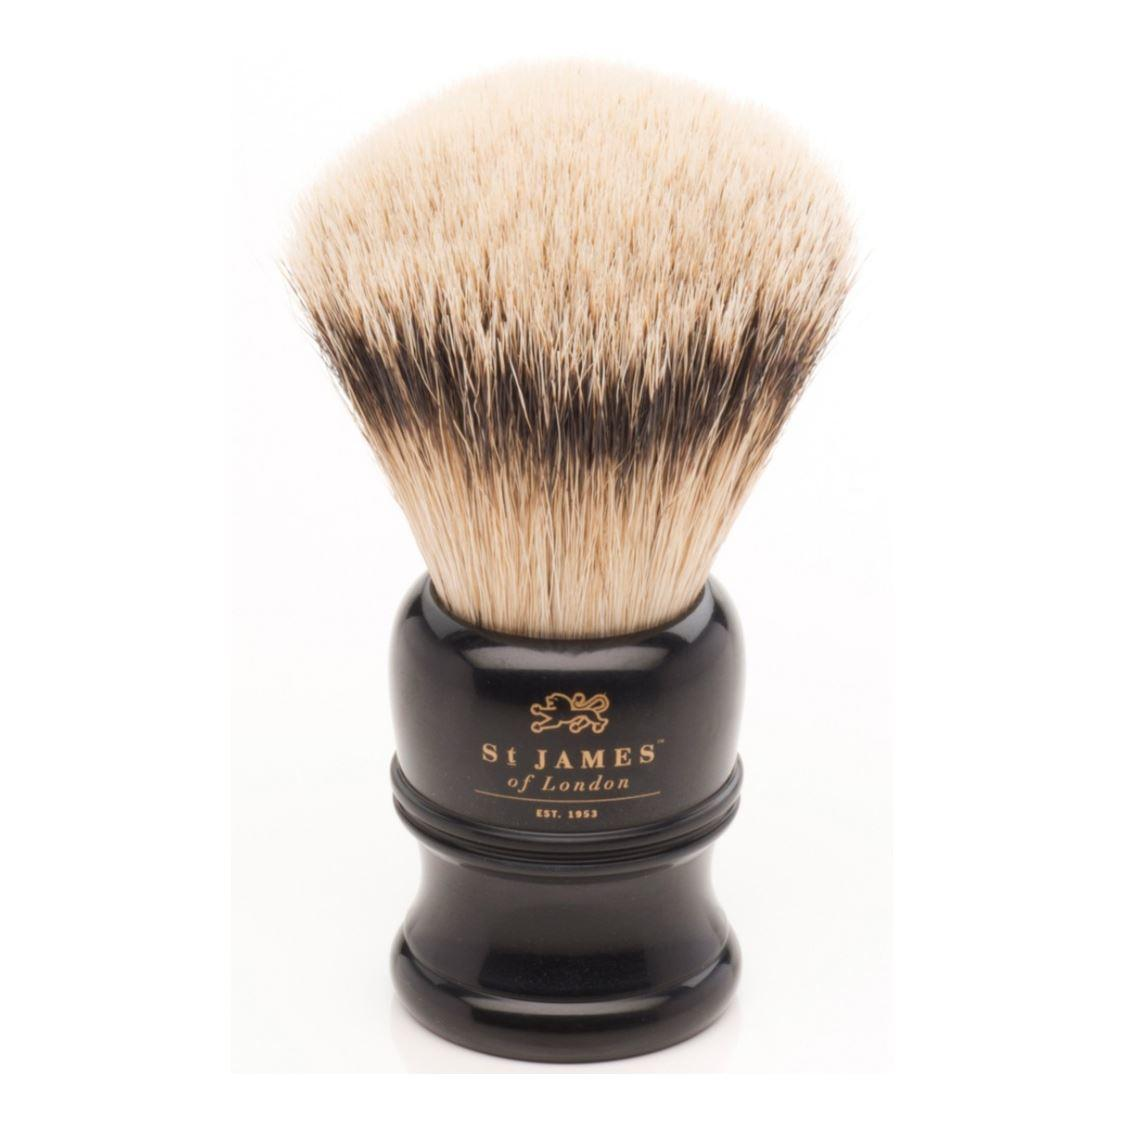 St James of London Large Faux Ebony Black Silvertip Shaving Brush